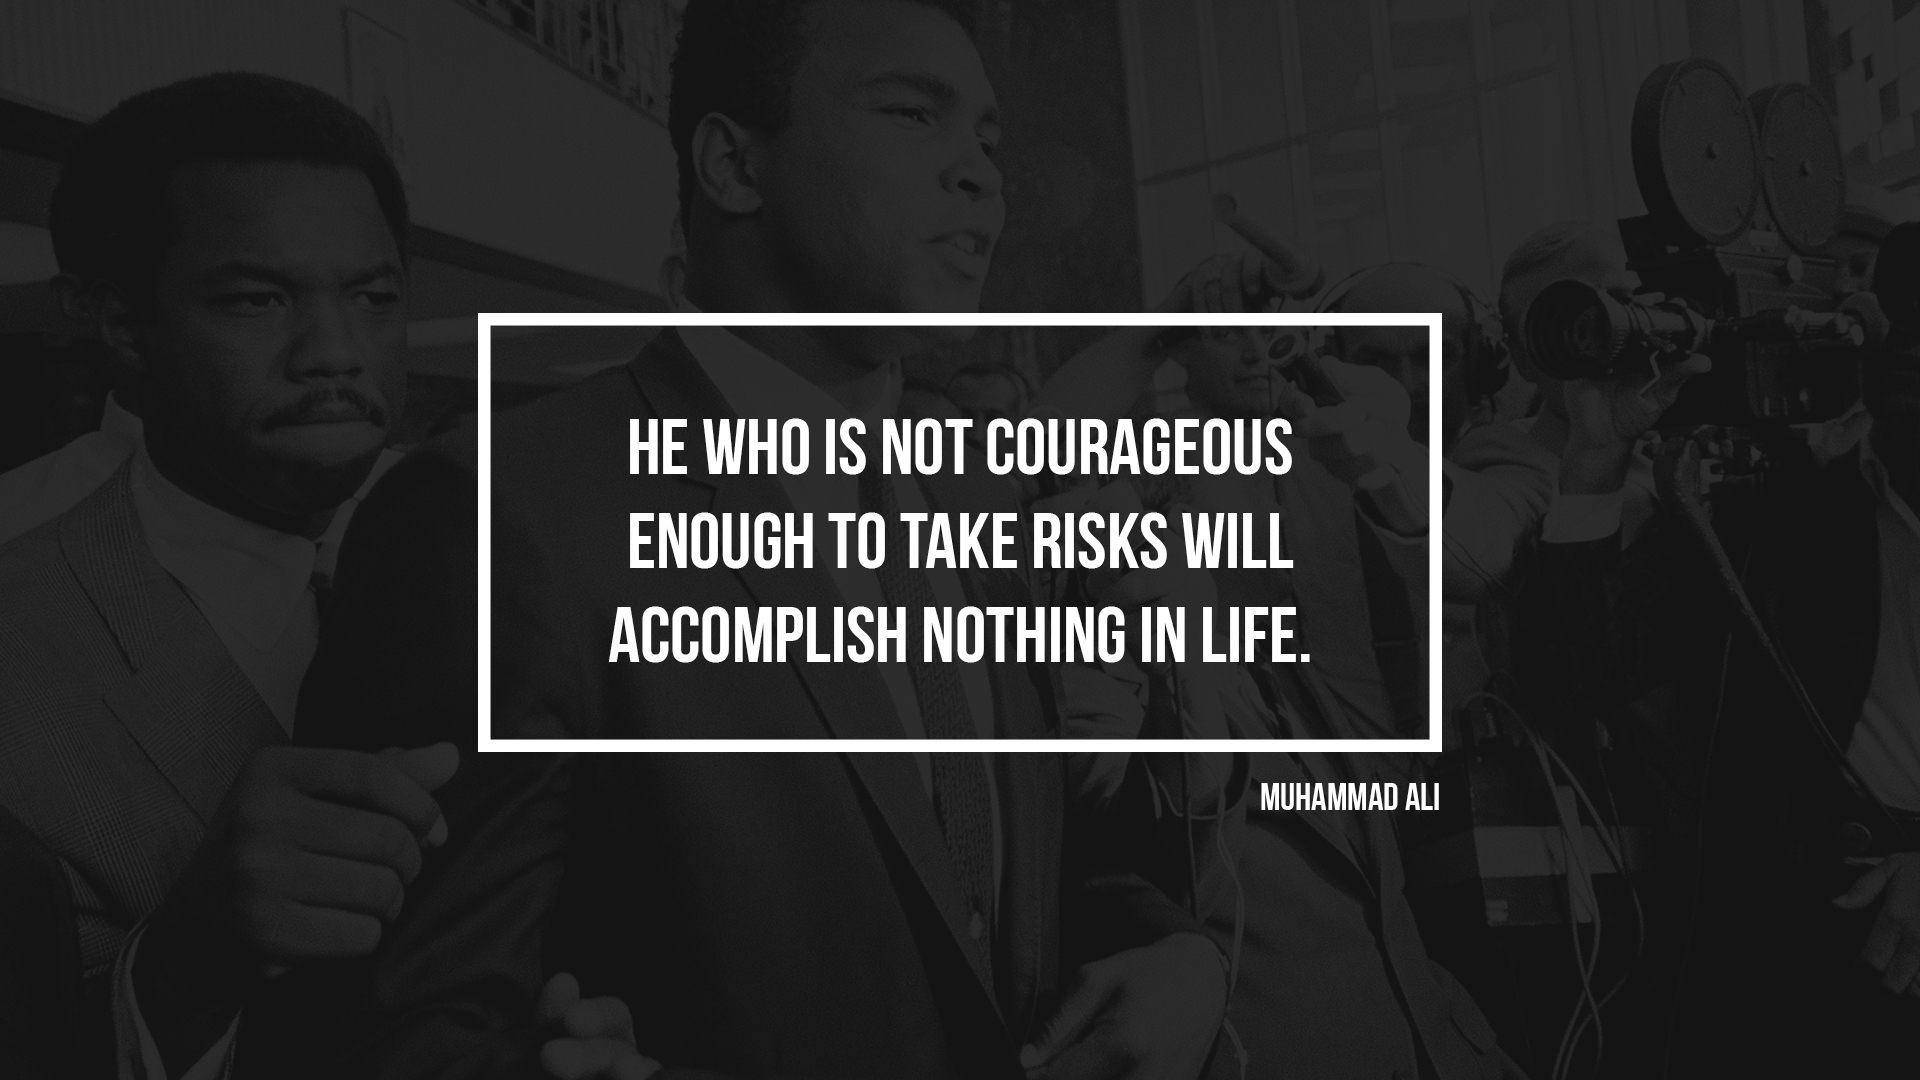 hd-muhammad-ali-quotes-image - wallpaper.wiki